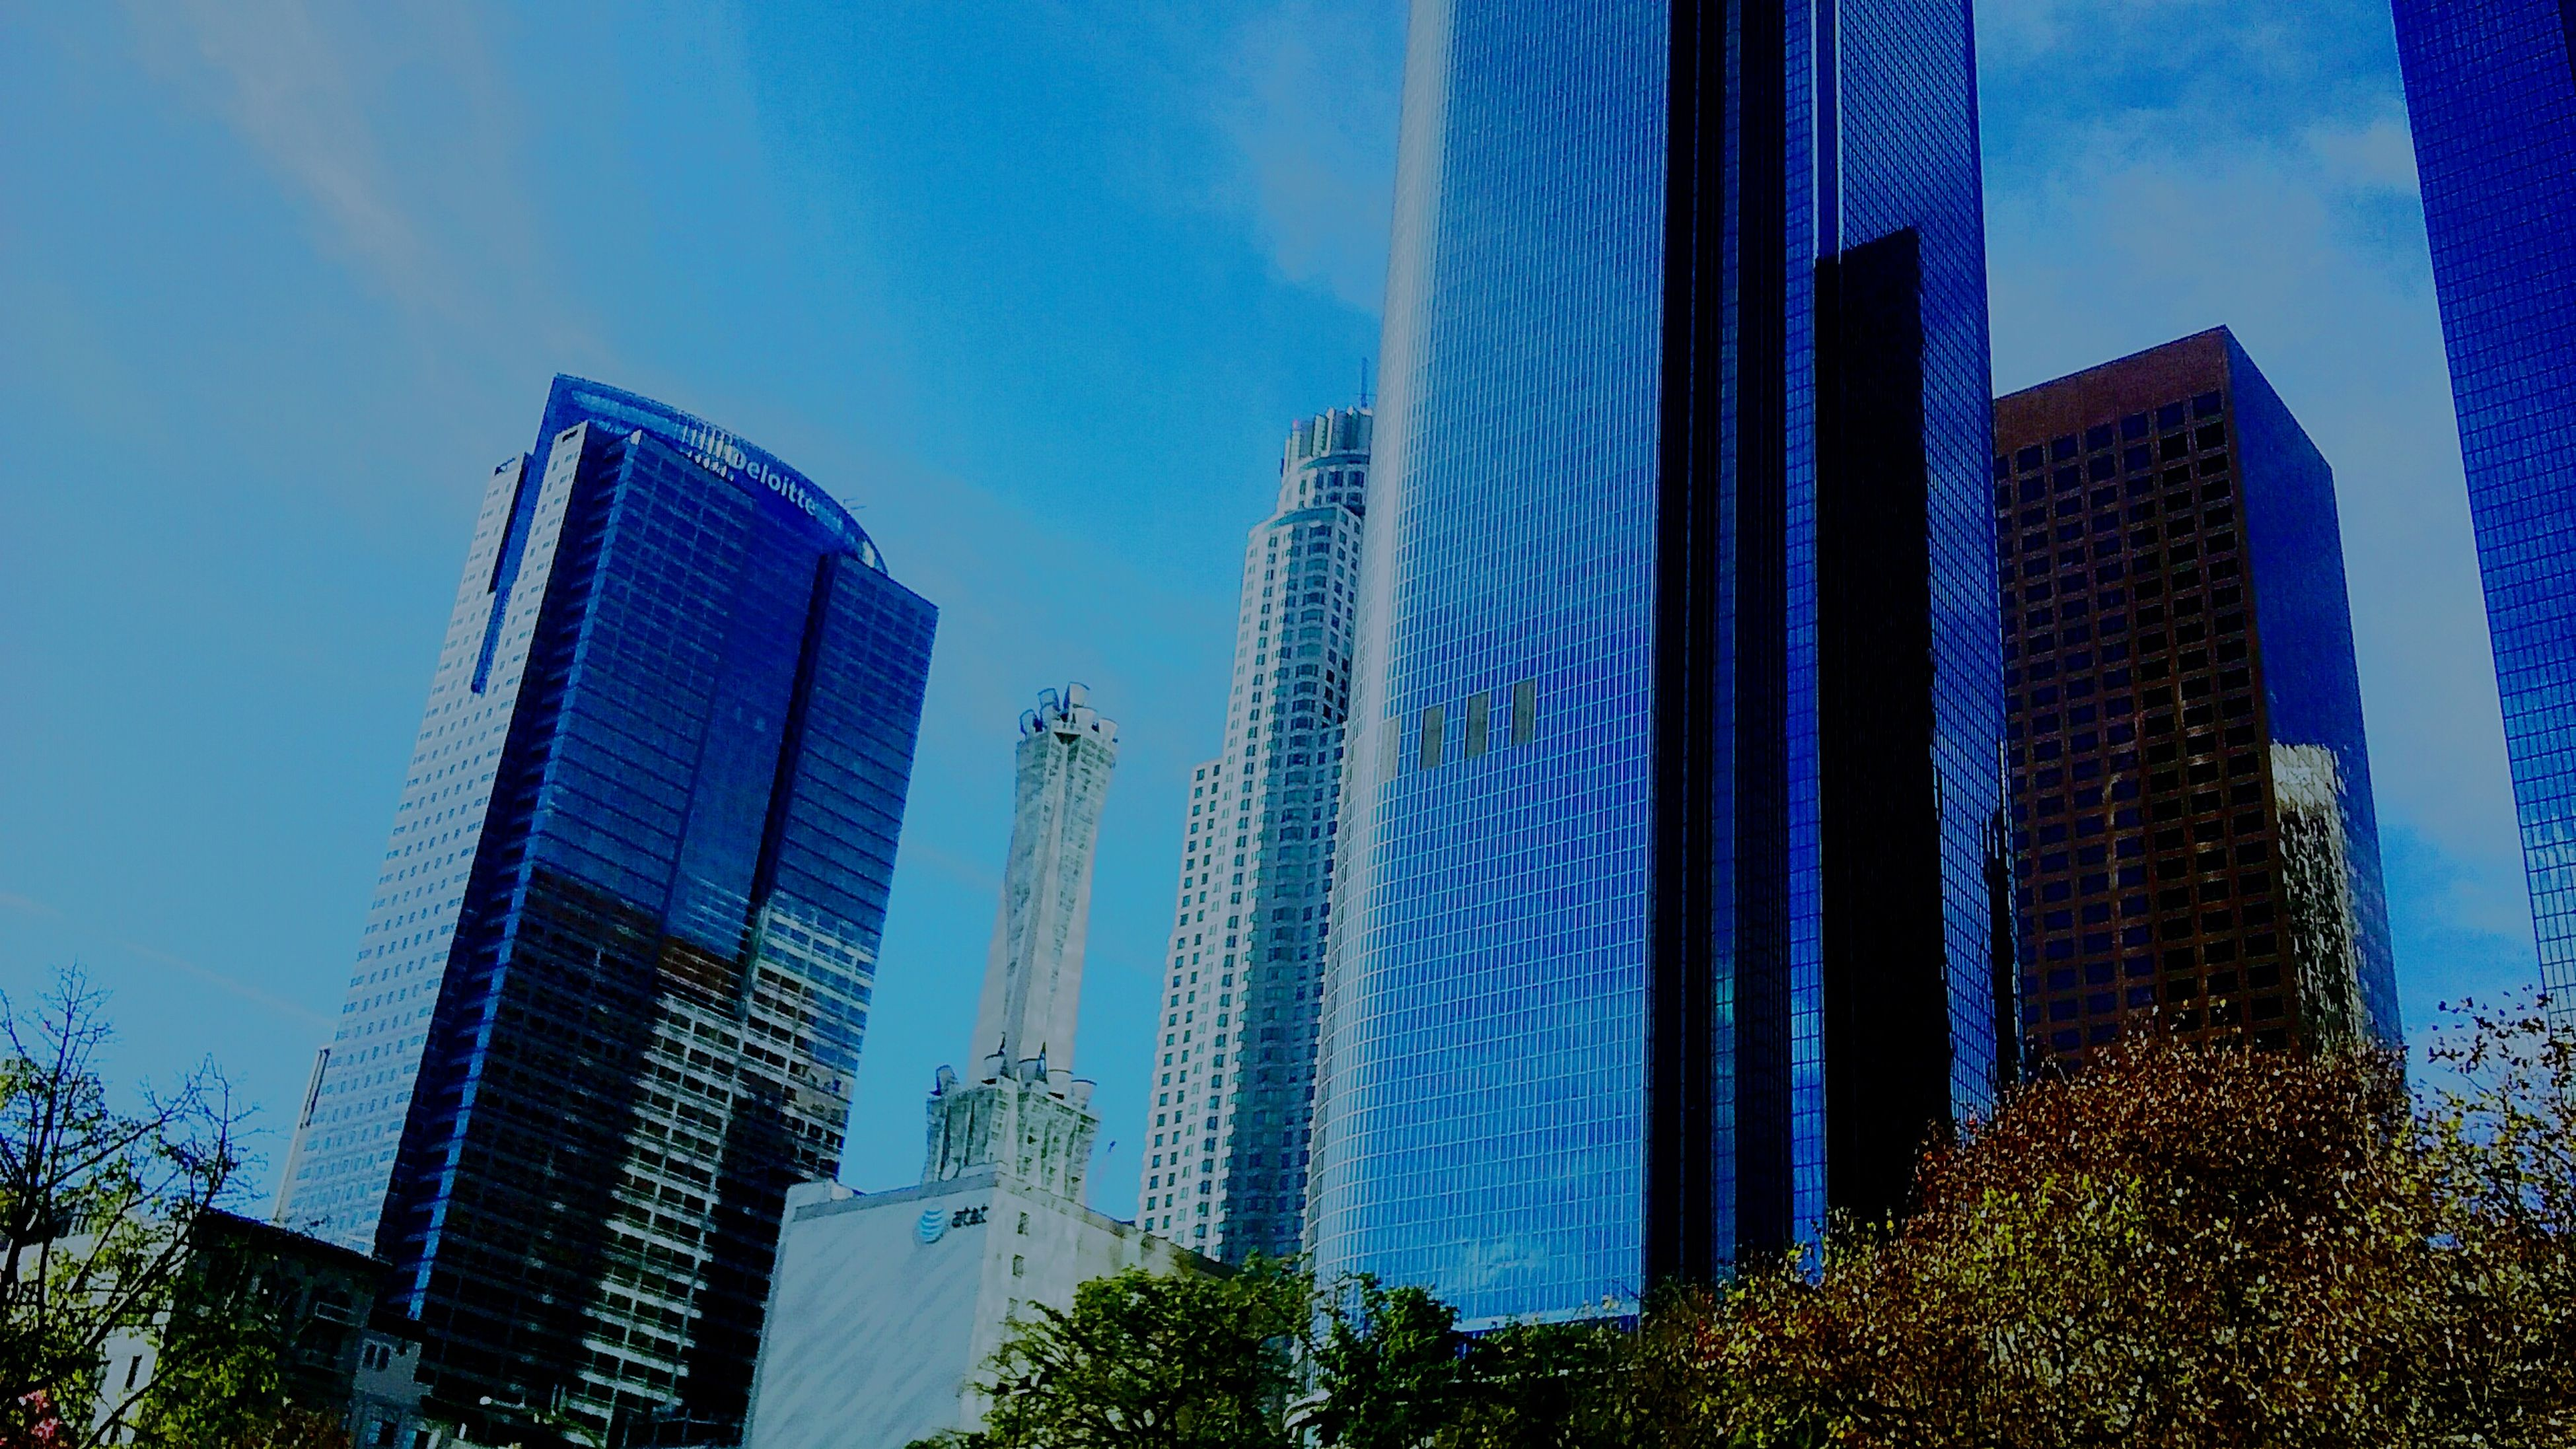 architecture, building exterior, built structure, skyscraper, city, modern, tall - high, low angle view, office building, tower, blue, sky, building, growth, tree, tall, financial district, glass - material, urban skyline, city life